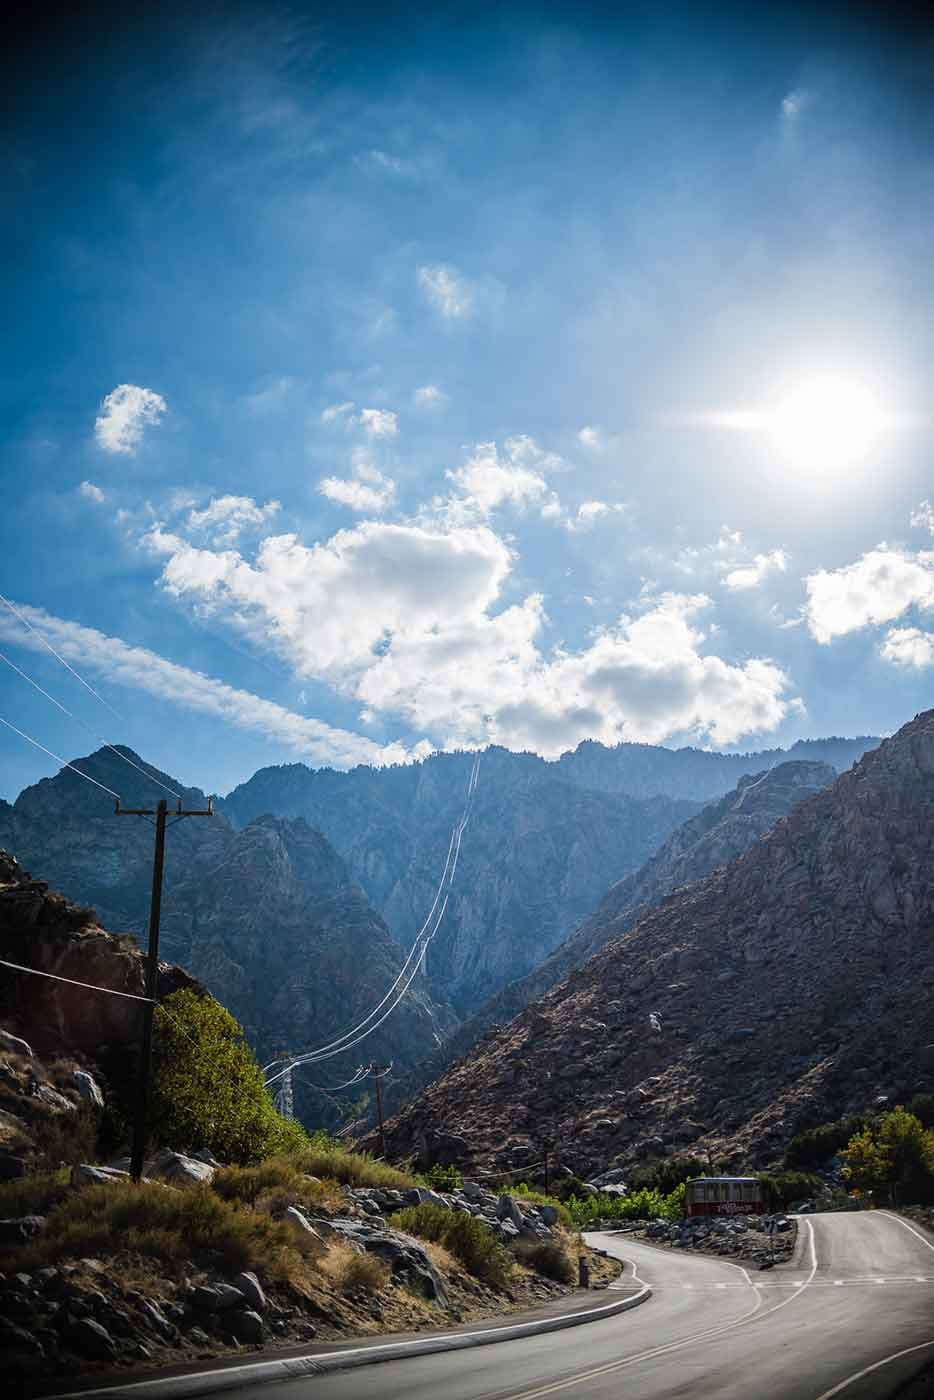 smlPalm-Springs-Aerial-Tramway---Sept-2015-7.jpg